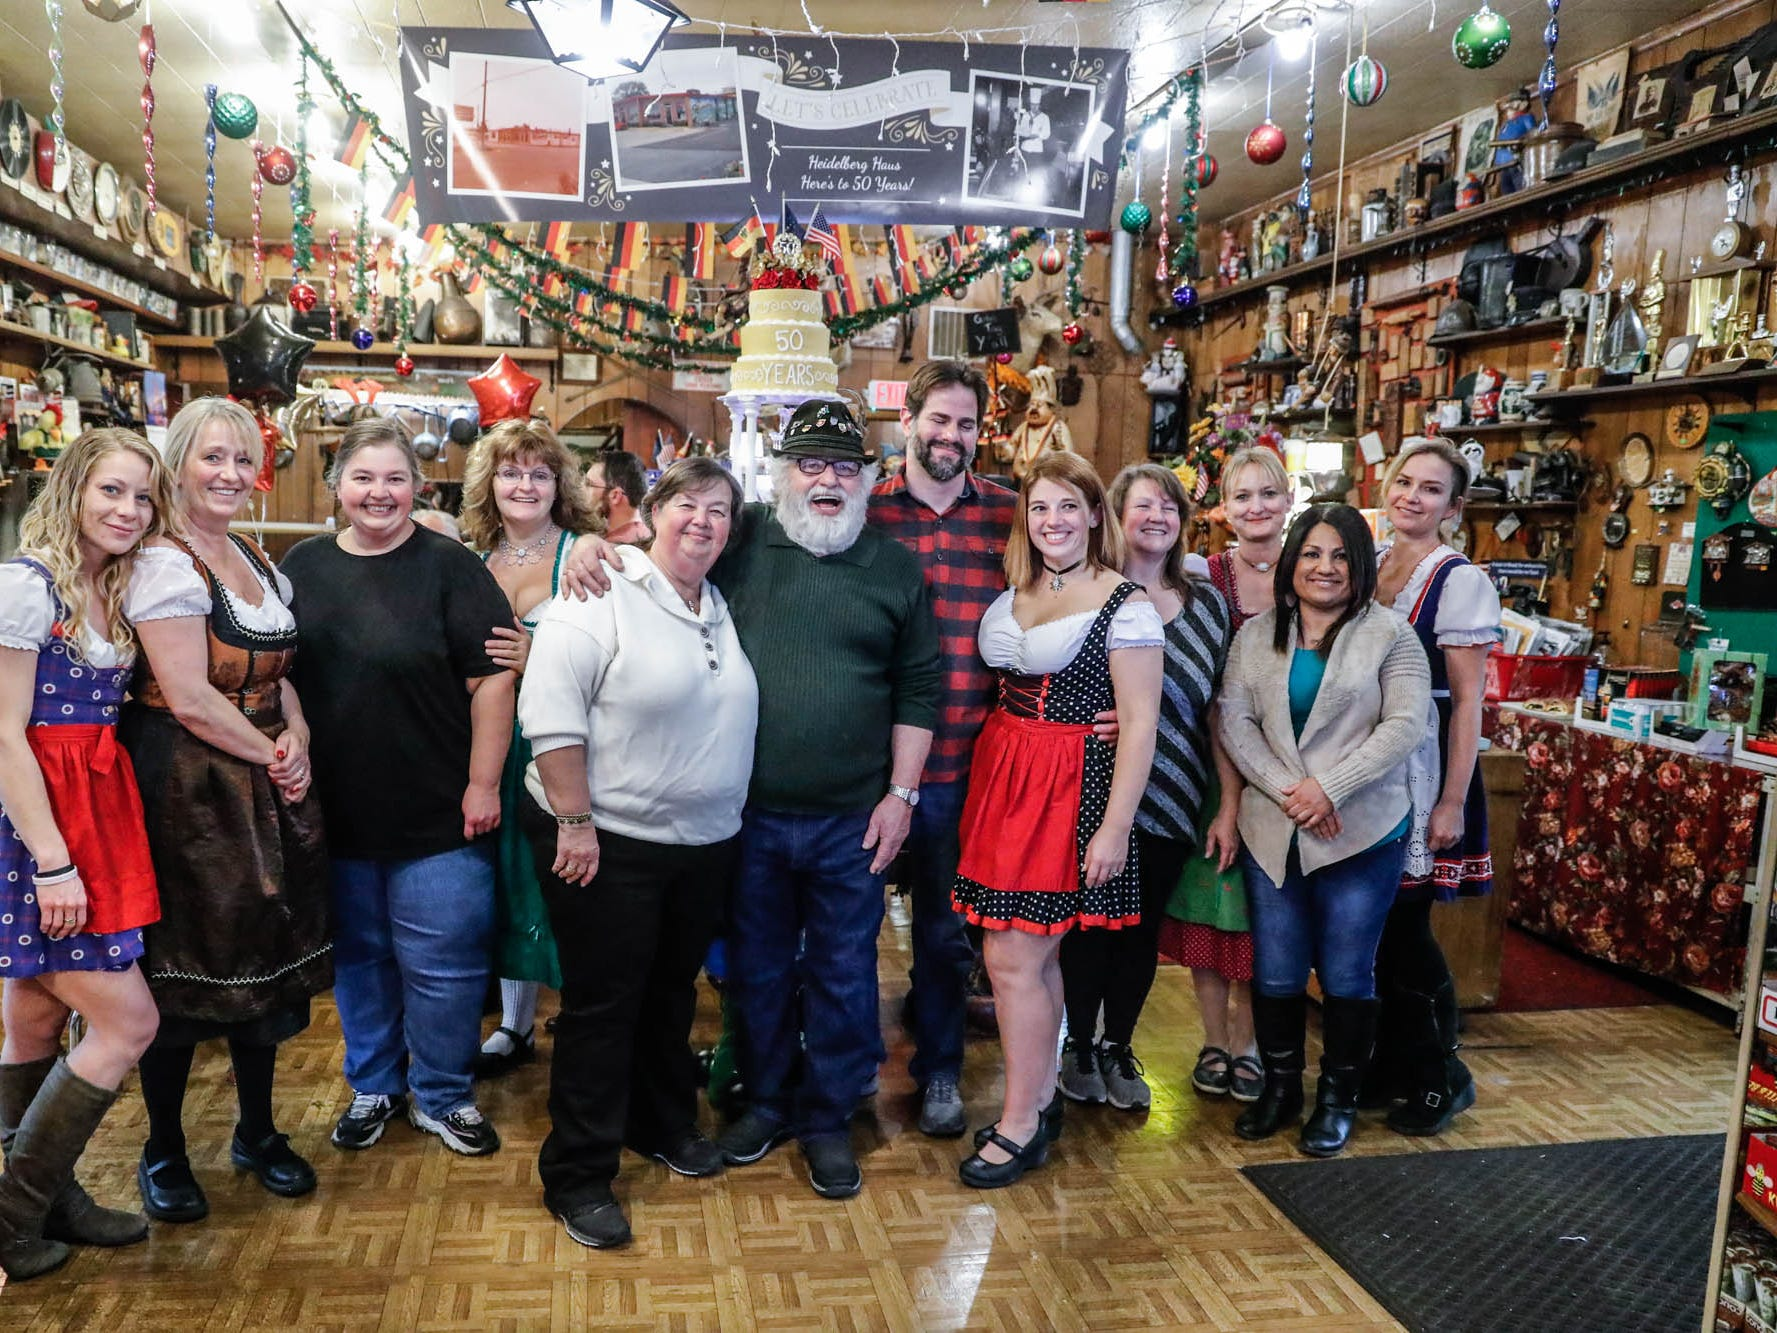 Heidelberg Haus Cafe and Bakery, 7625 Pendleton Pike, Indianapolis Ind., staff pose for photos as they celebrate the cafe's 50th year in business on Saturday, Dec. 8th, 2018. The cafe, bakery, and German grocery is well known for its extensive collection of German Kitsch.